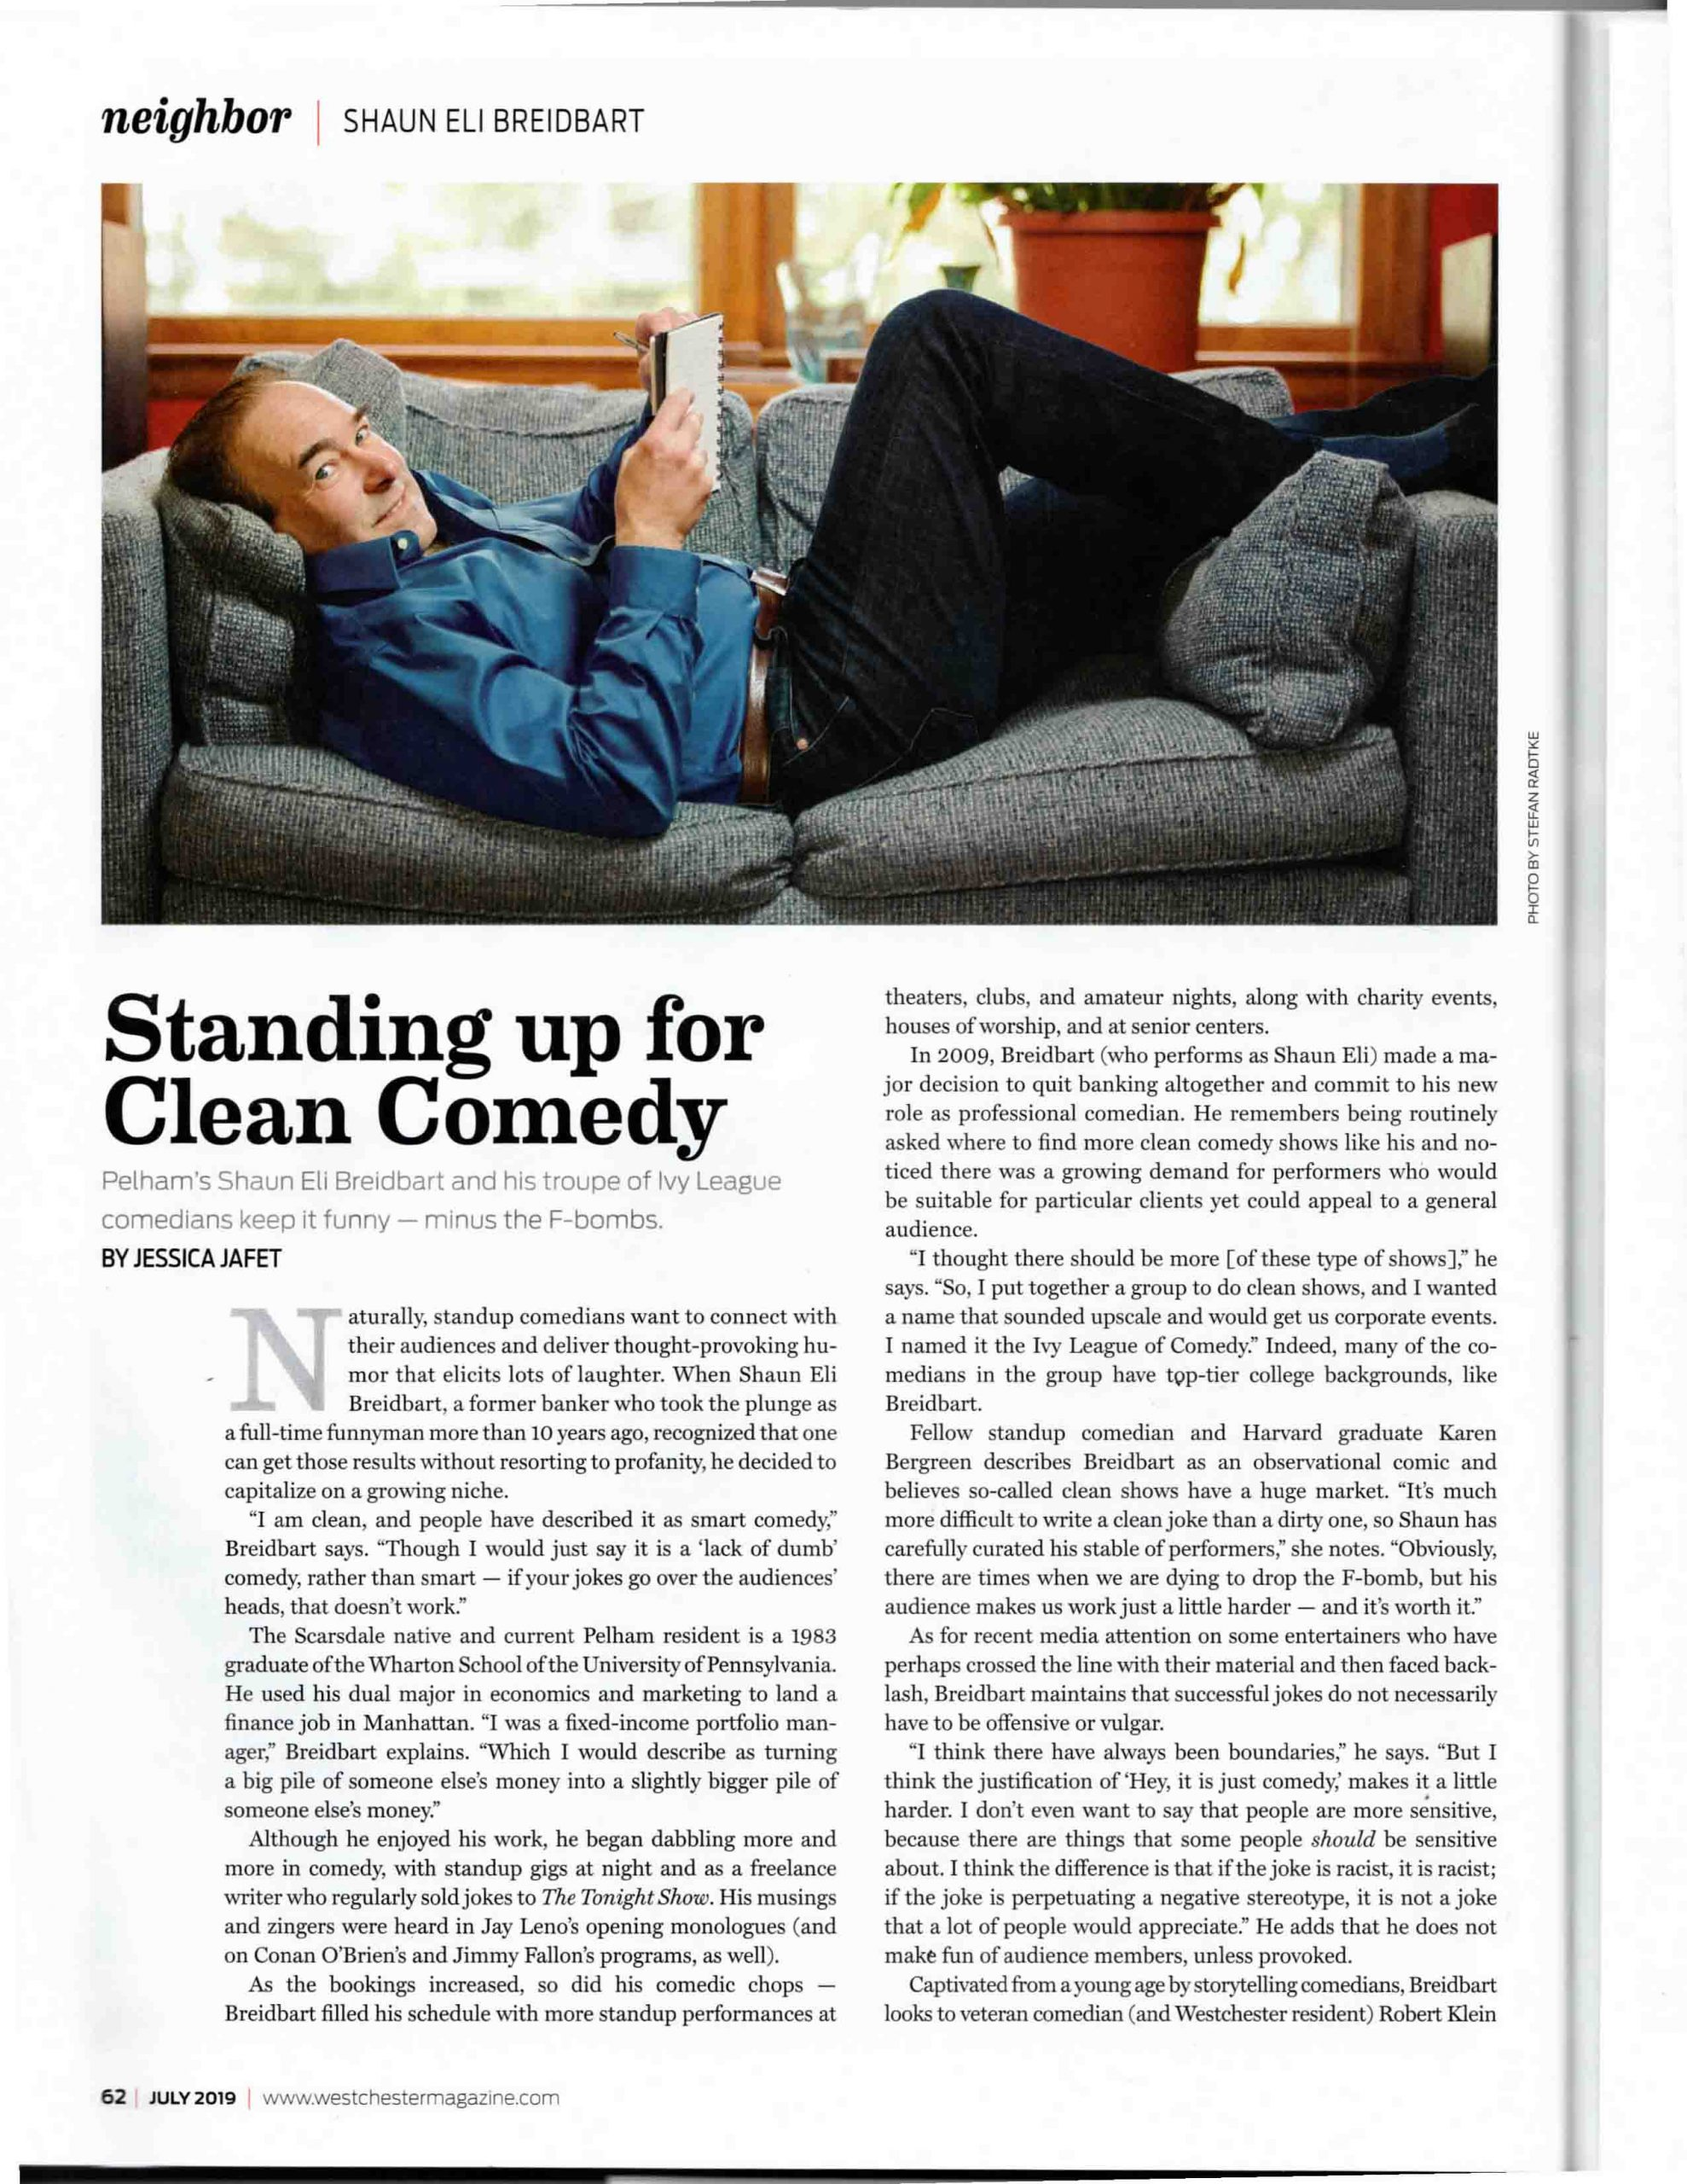 page 1 of Westchester Magazine article Standing up for Clean Comedy July 2019